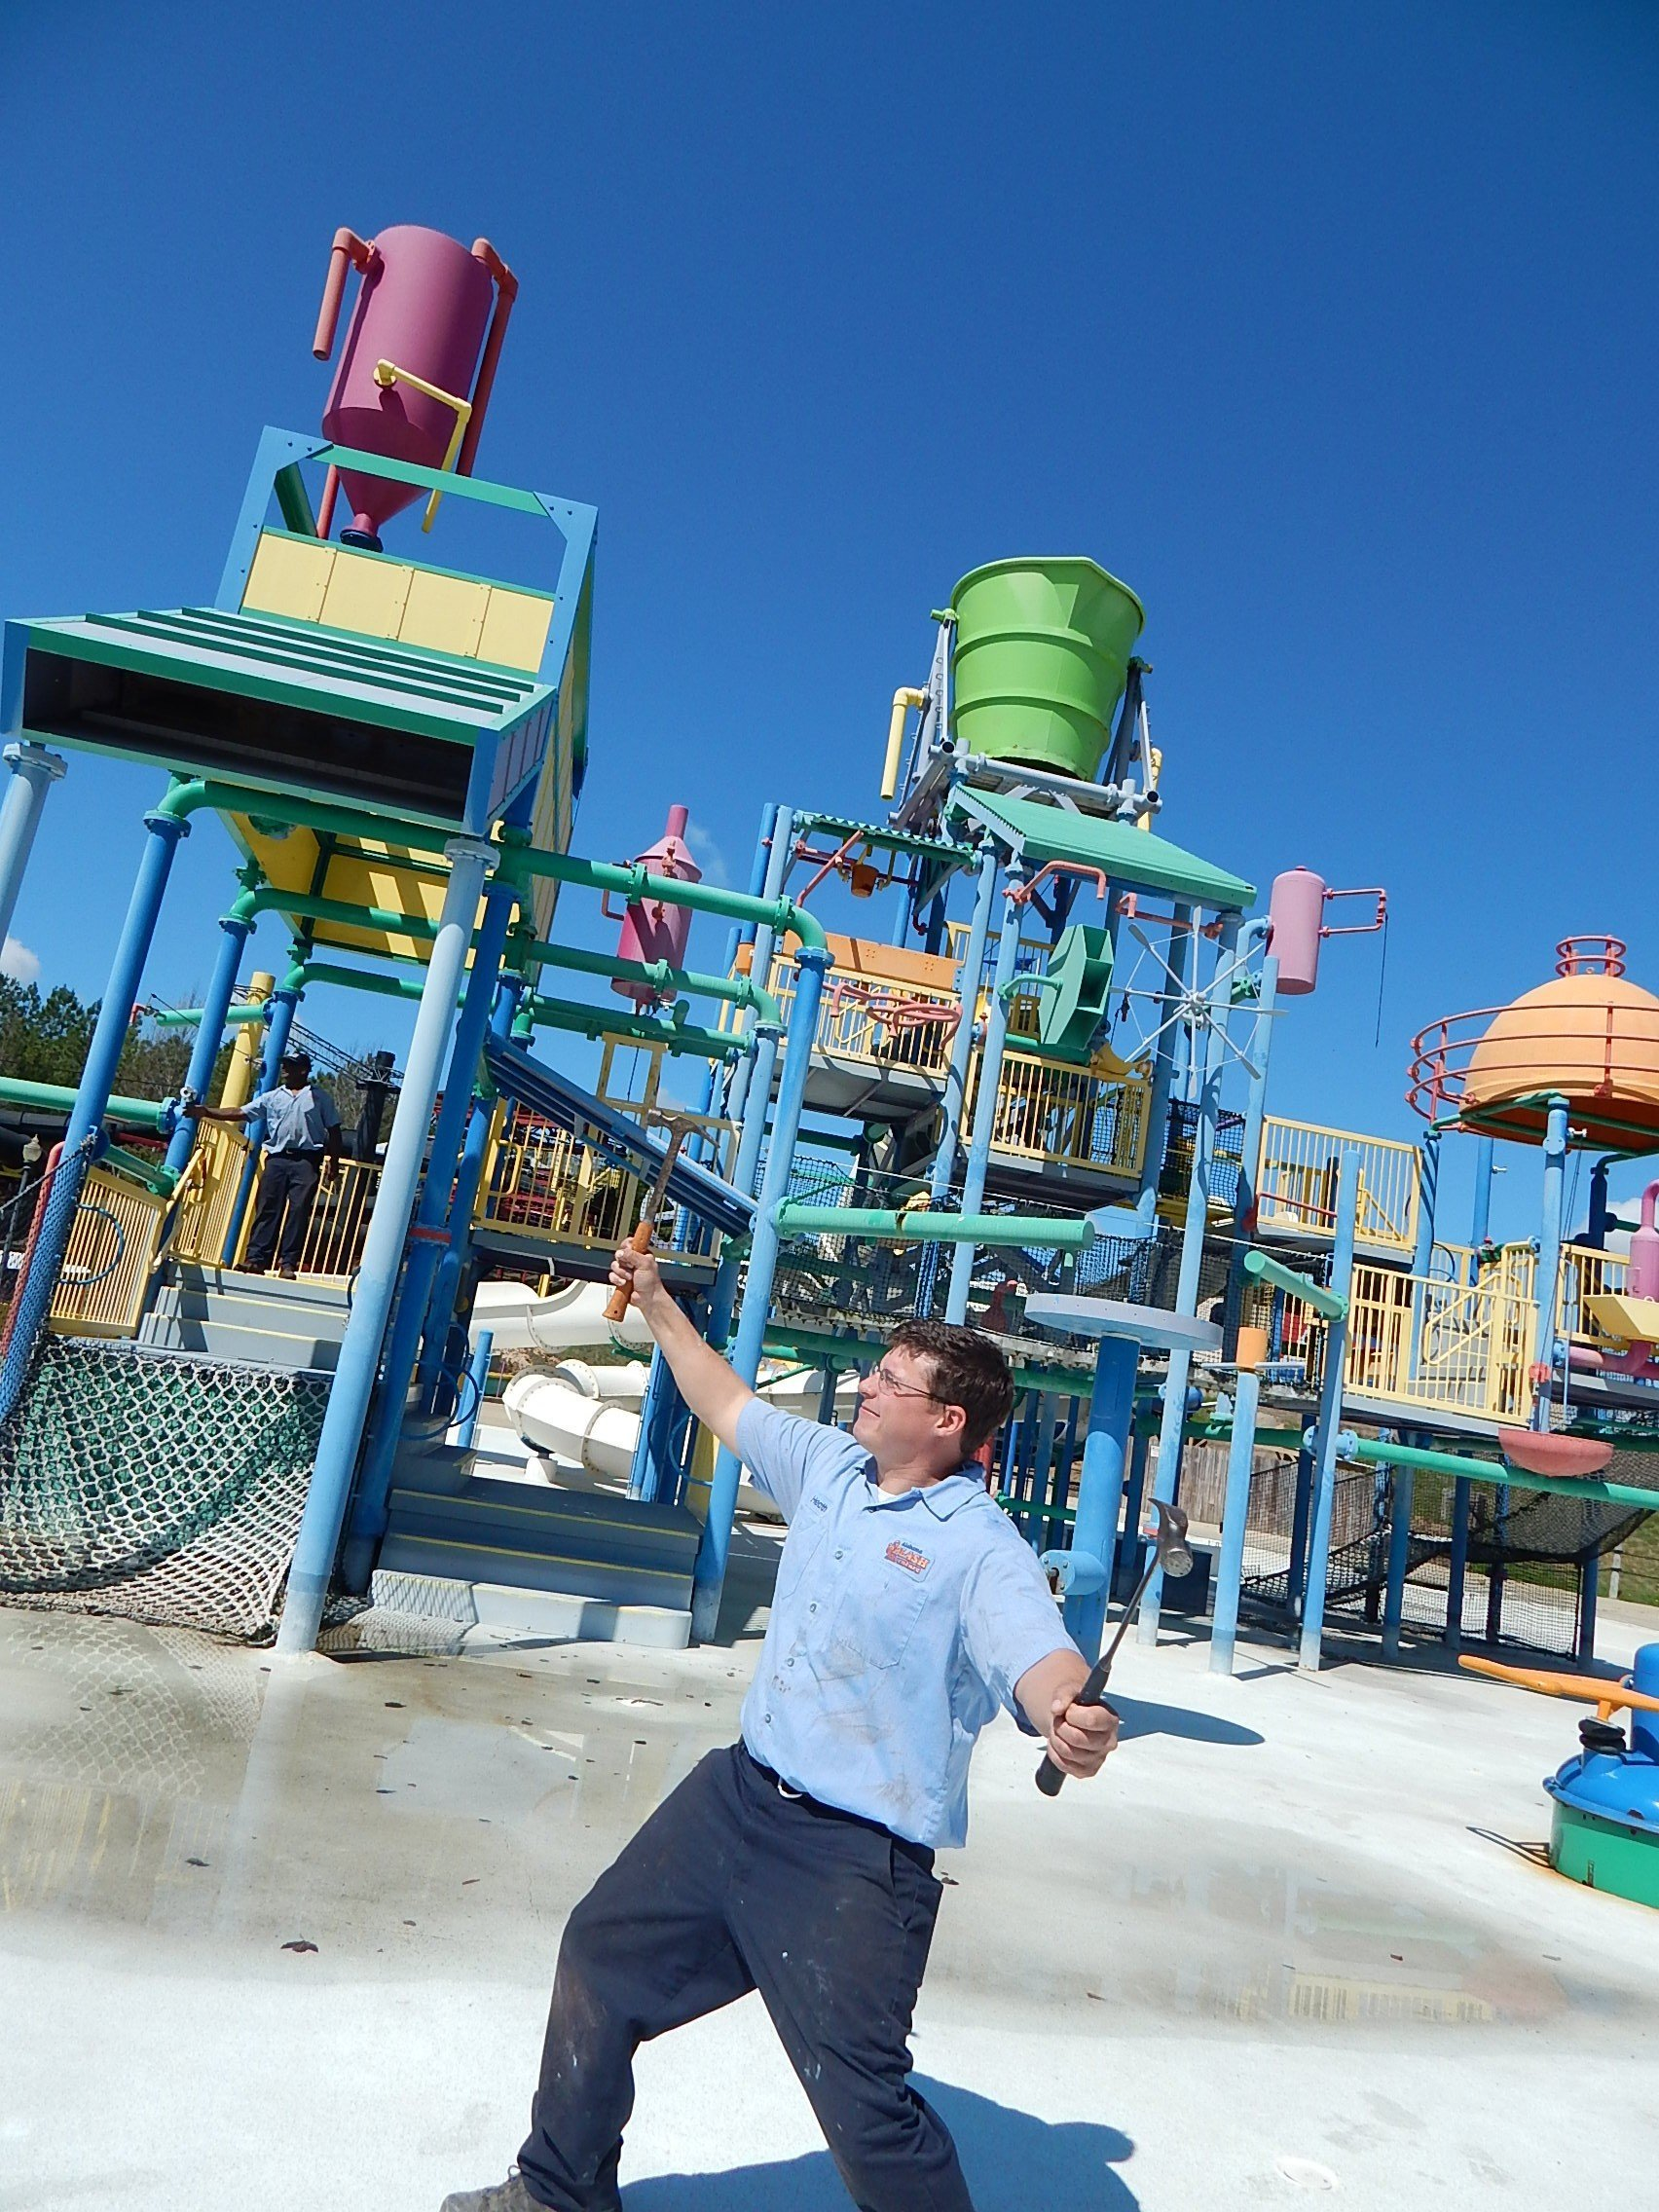 Keeping Up with Upkeep – Advice and Best Practices for a Clean Waterpark